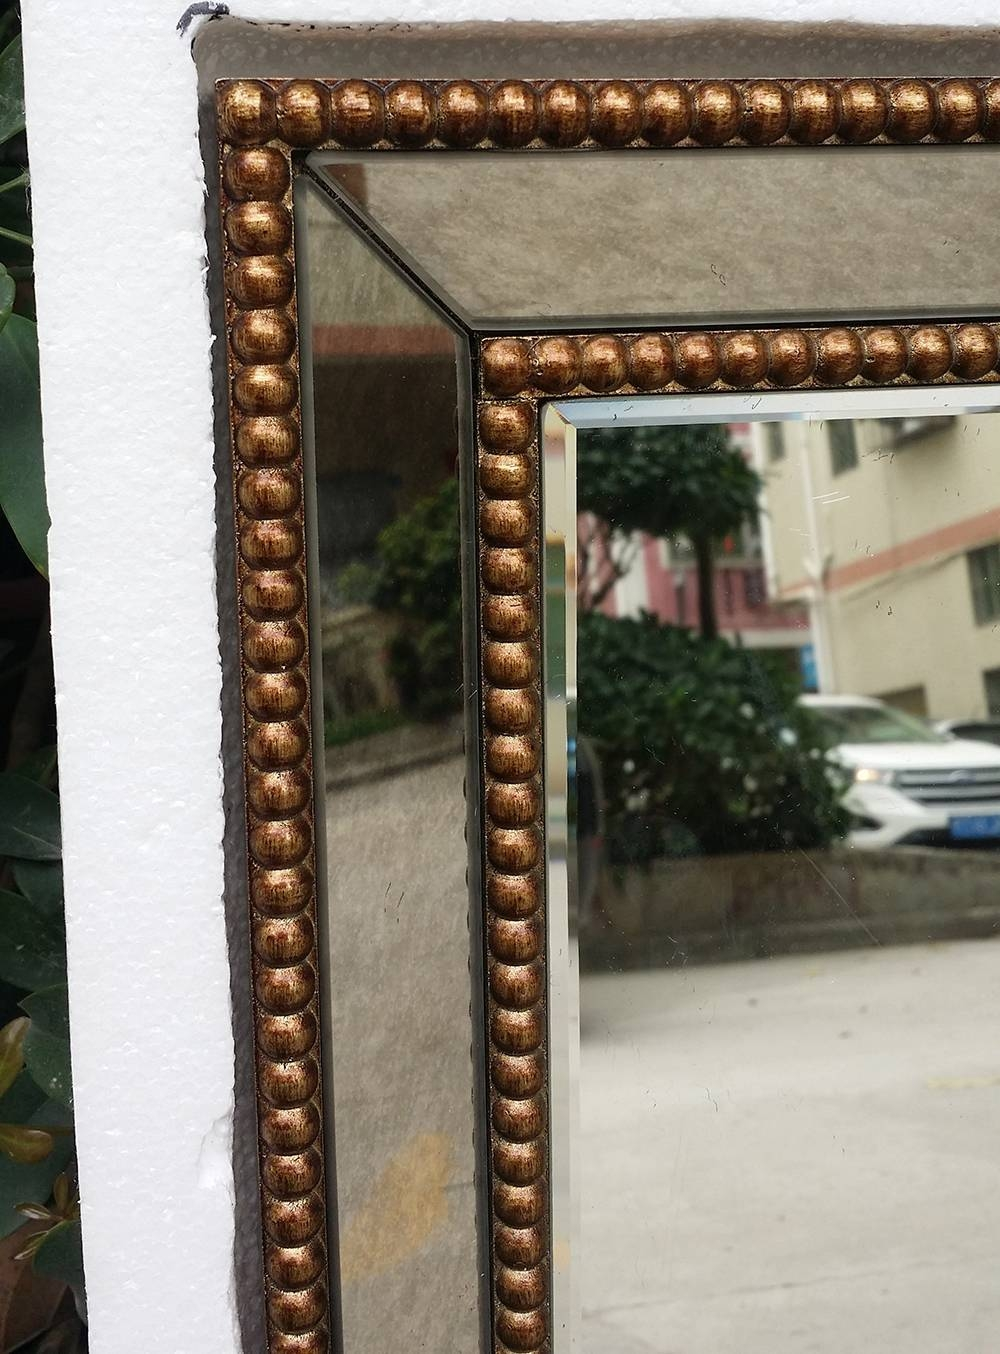 Mirrored Wall Decor Fretwork Square Wall Mirror Framed Wall Art Within Recent Fretwork Wall Art (View 19 of 25)